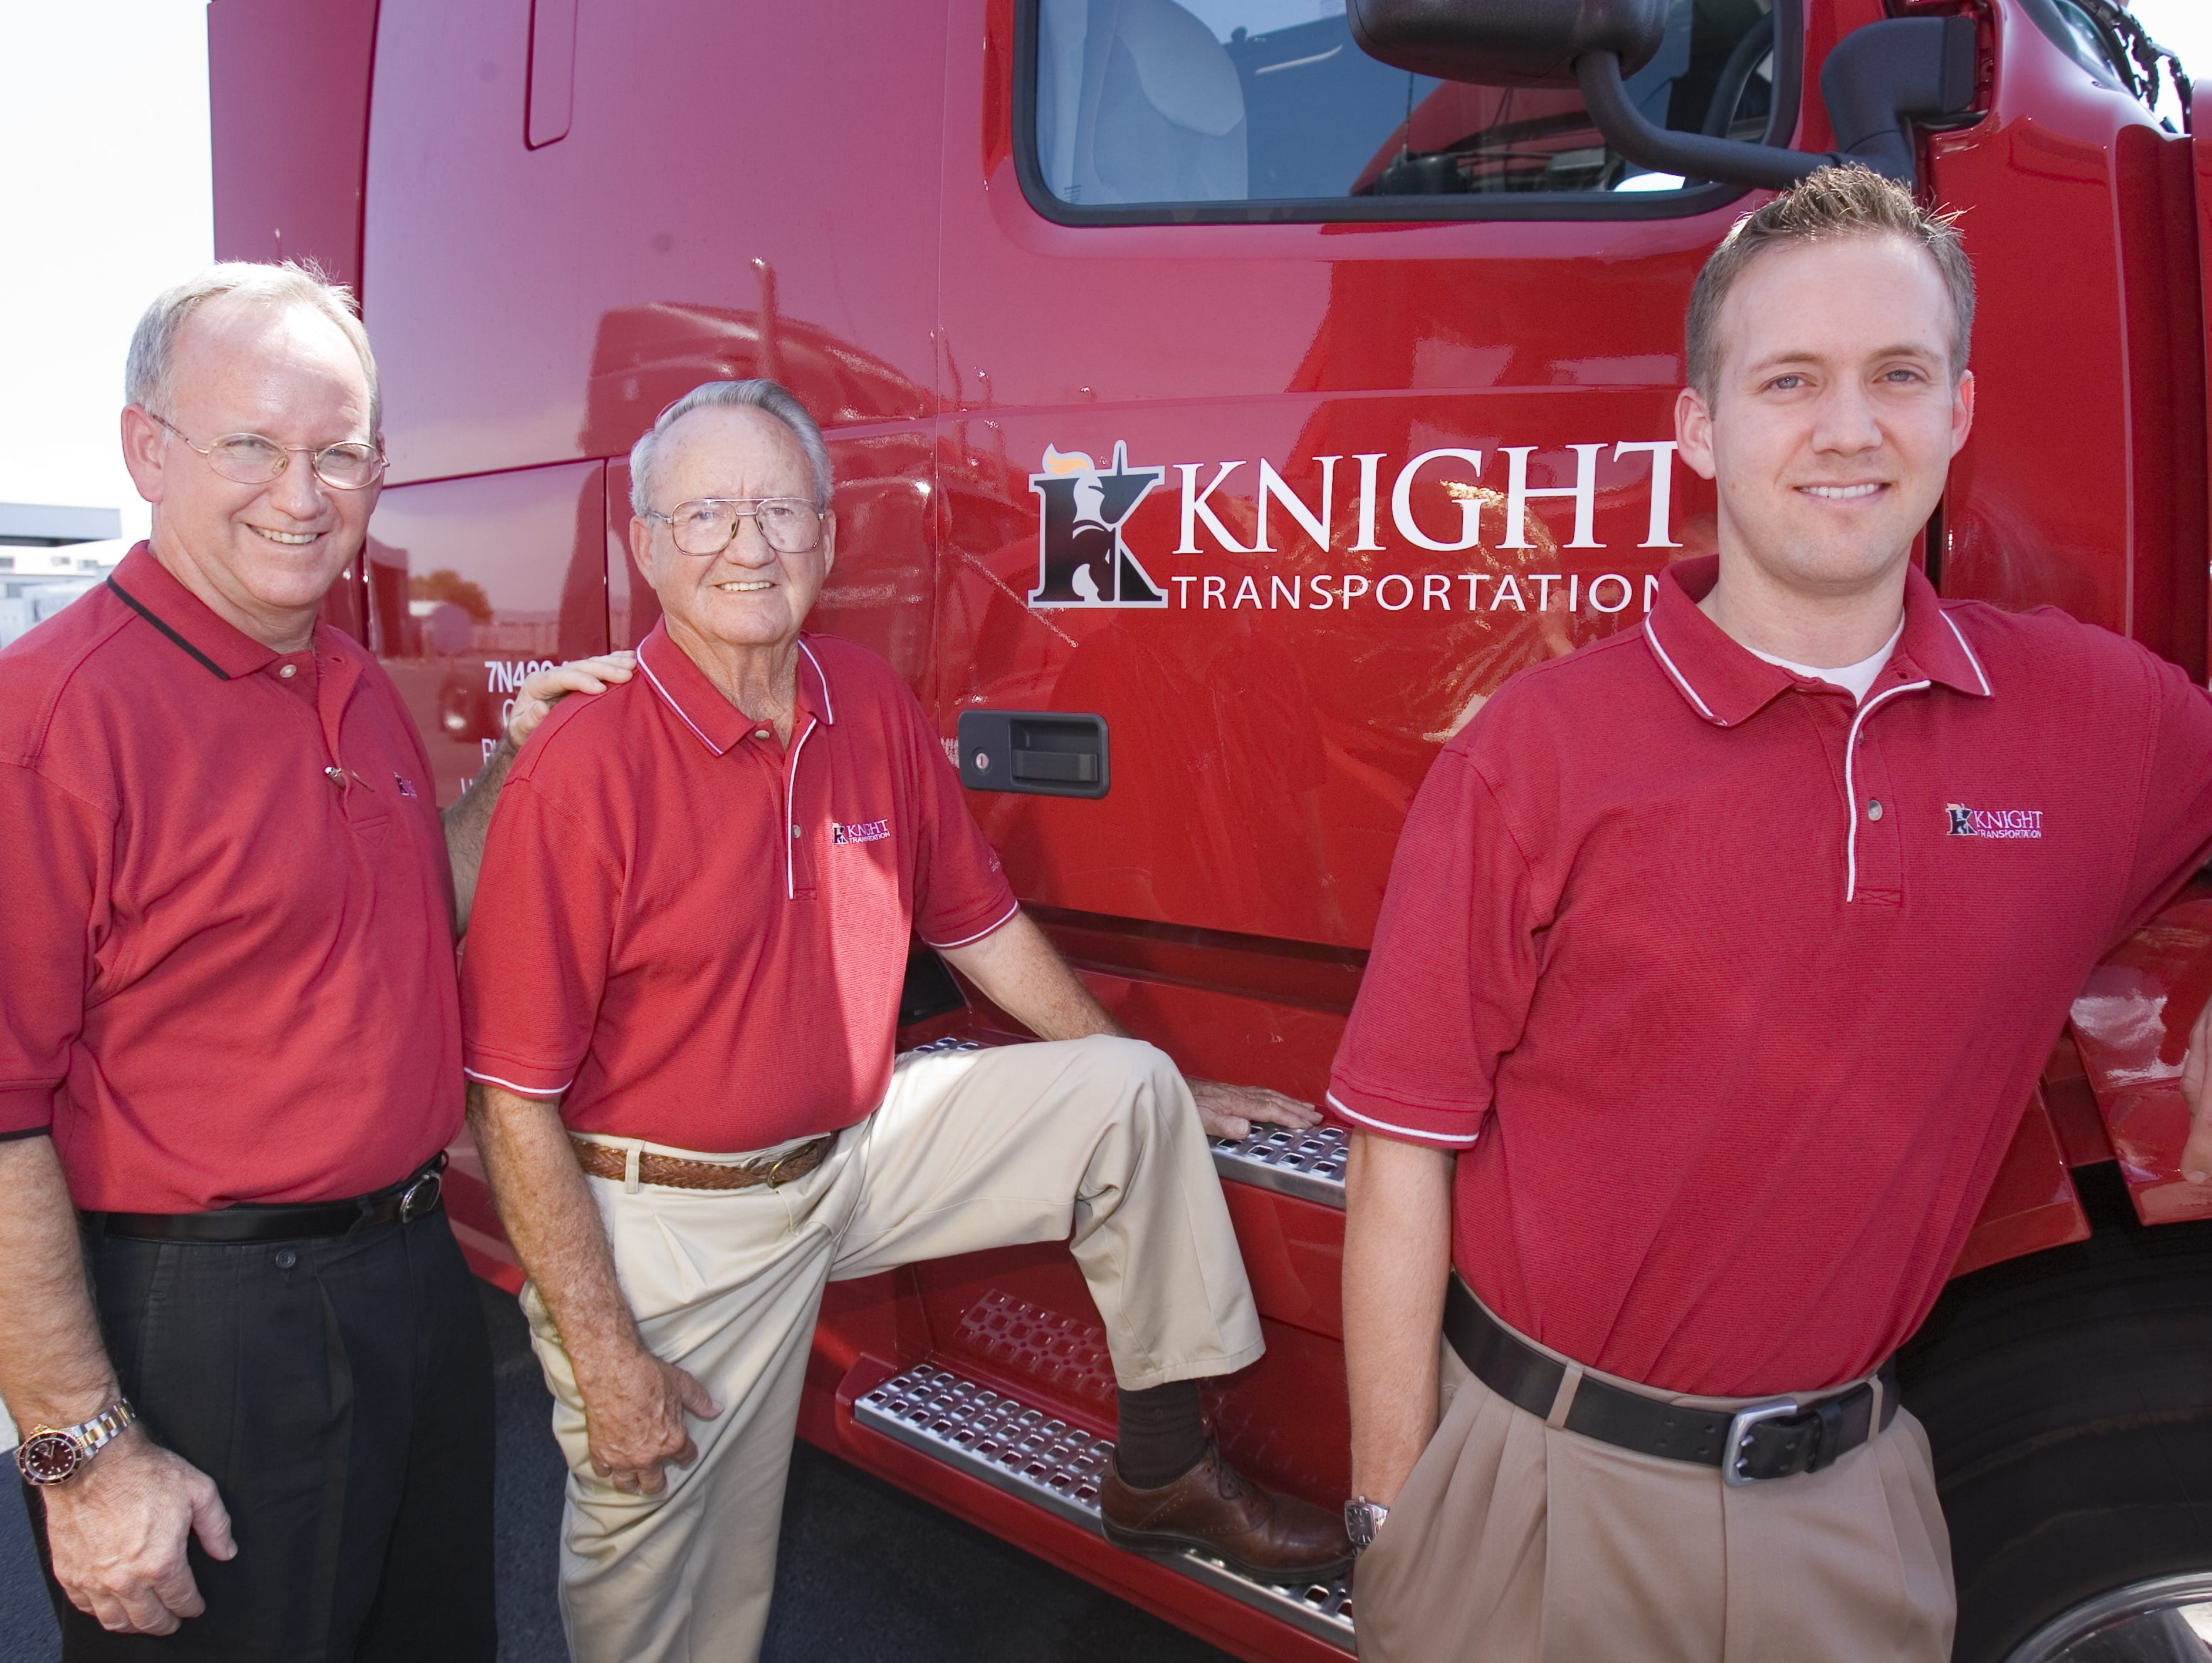 Knight Transportation Picture